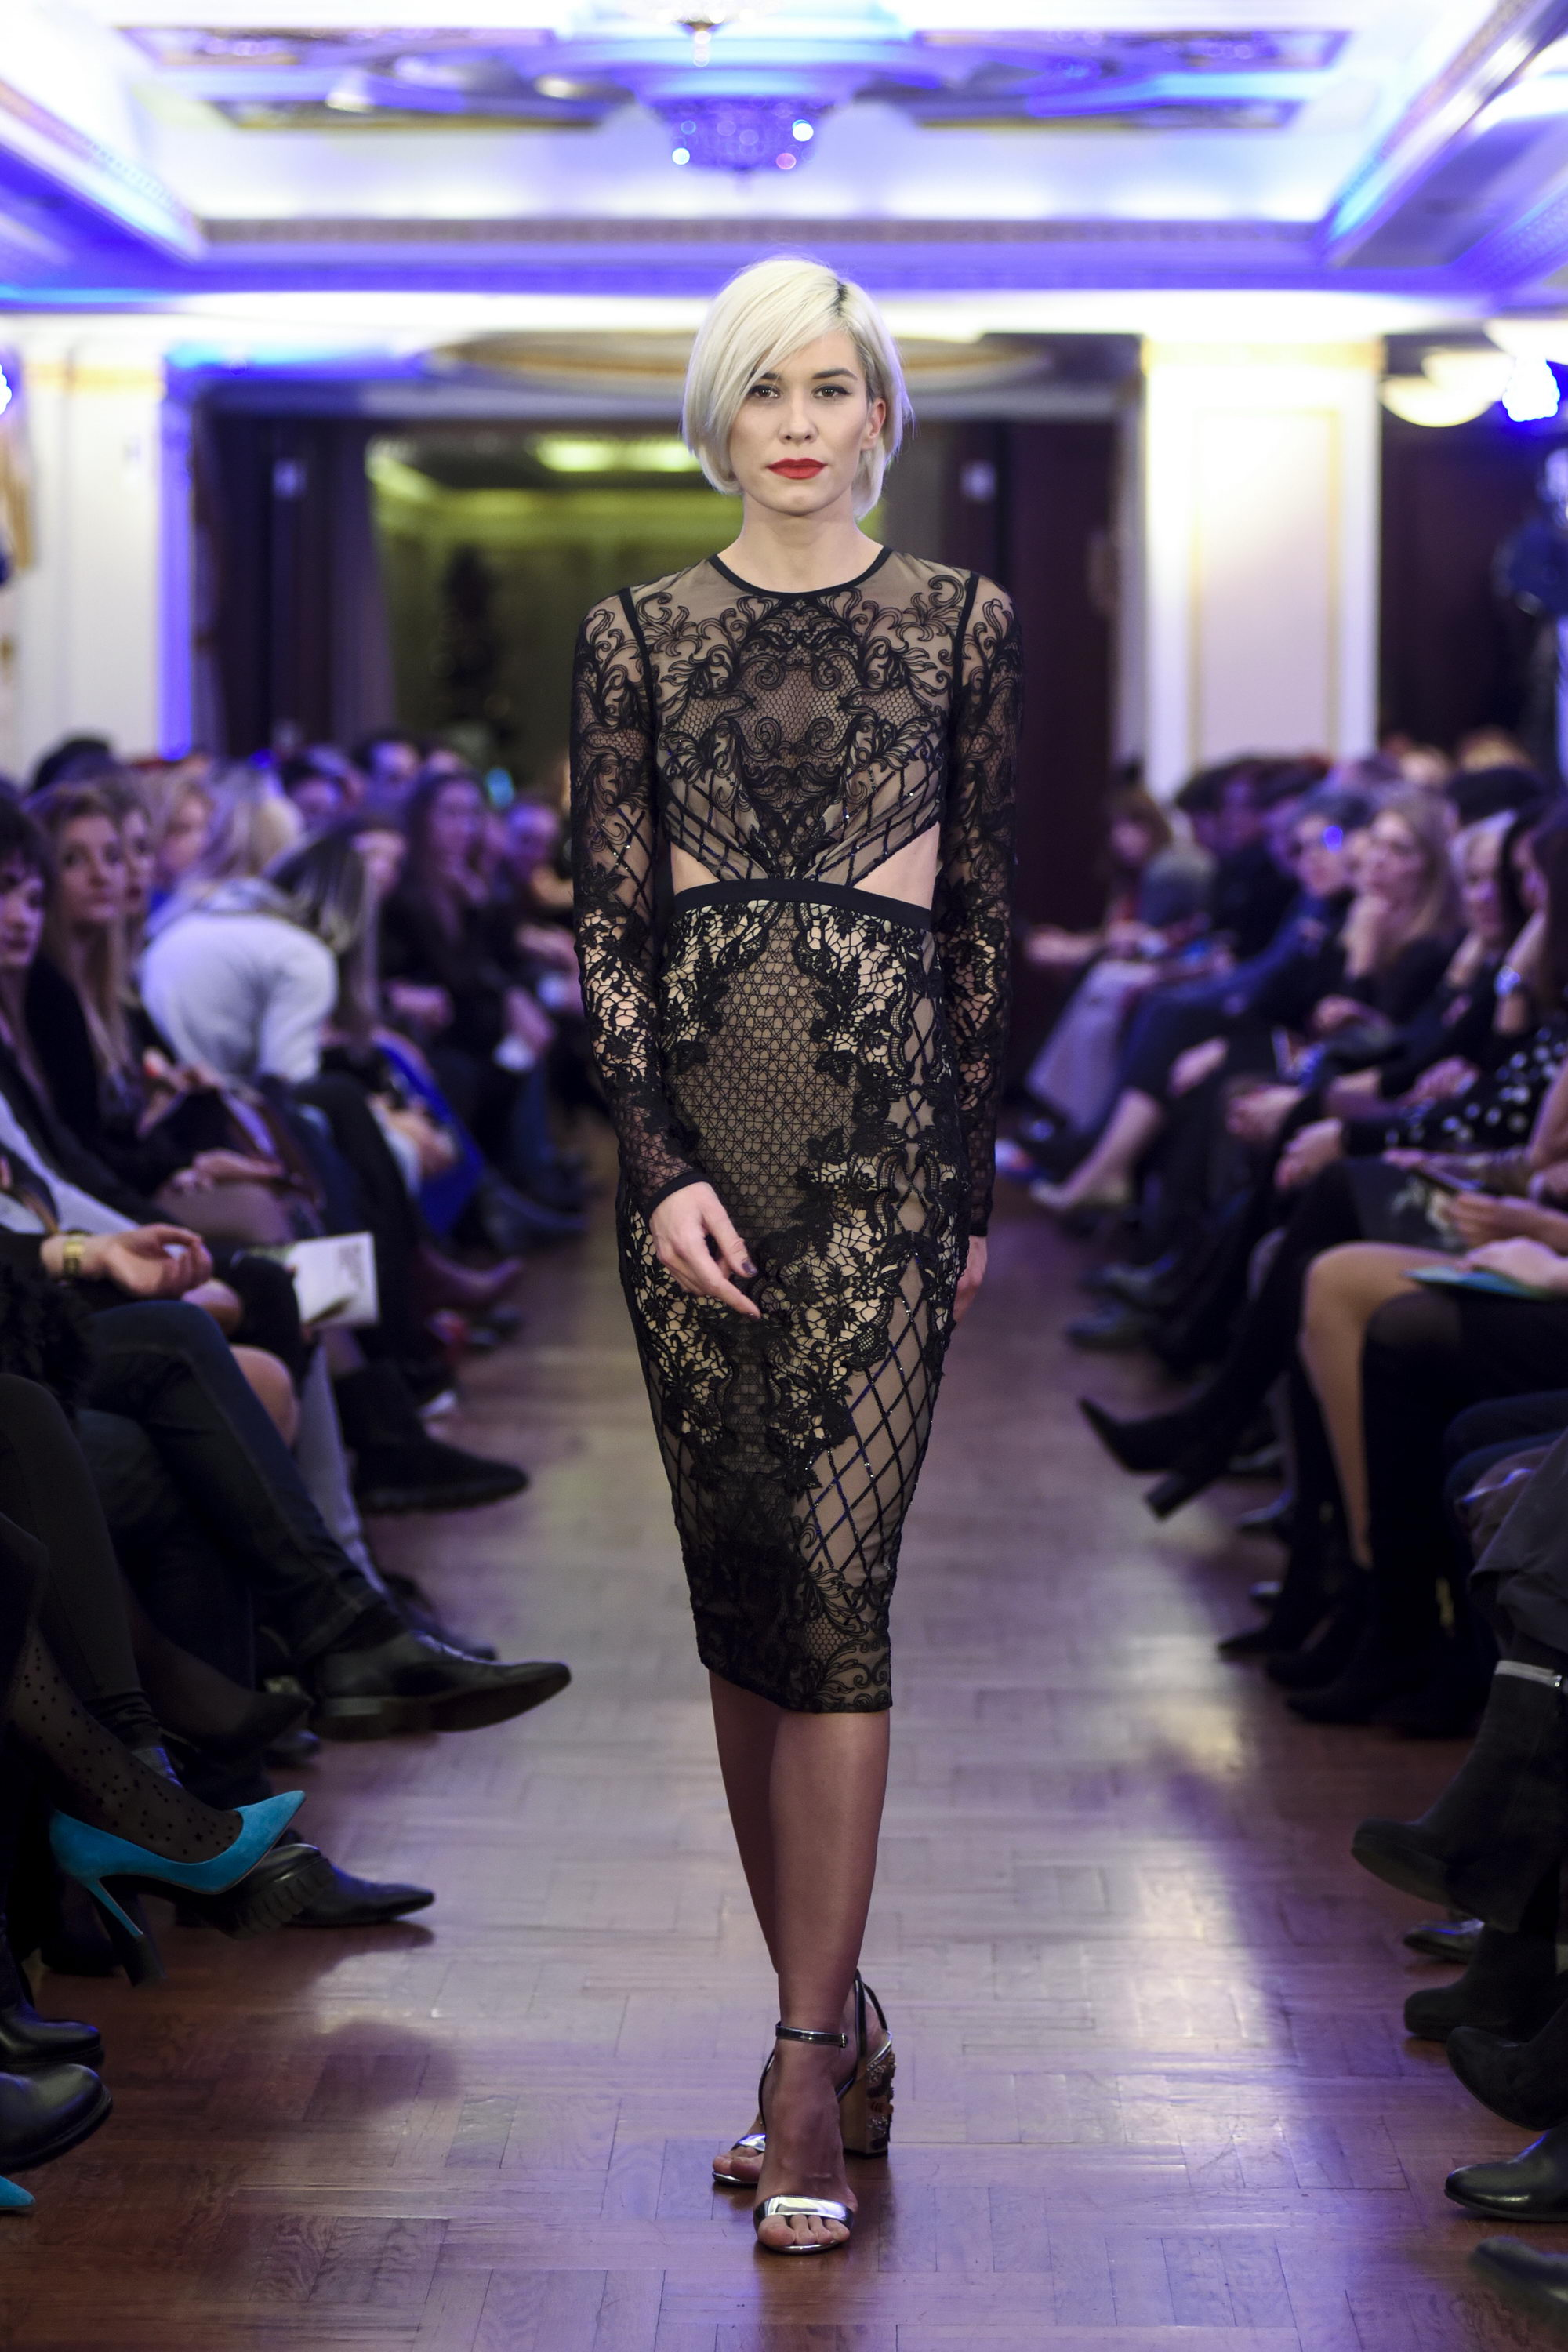 1514269853399_INES JANKOVIĆ Glam Fashion Night.jpg